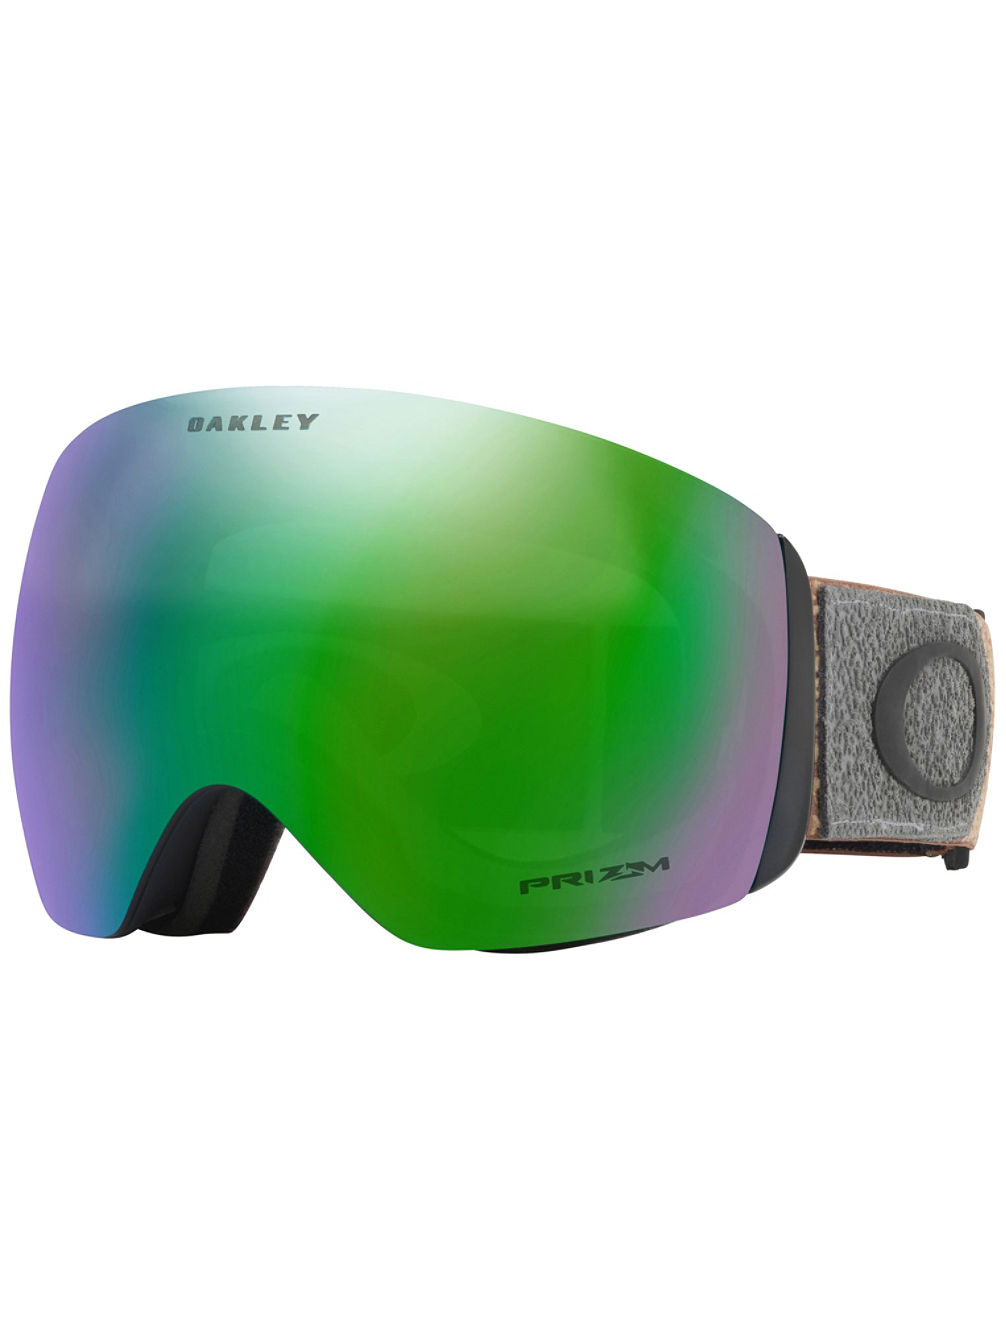 Flight Deck Henrik Harlaut Signature Mad X Dune Goggle